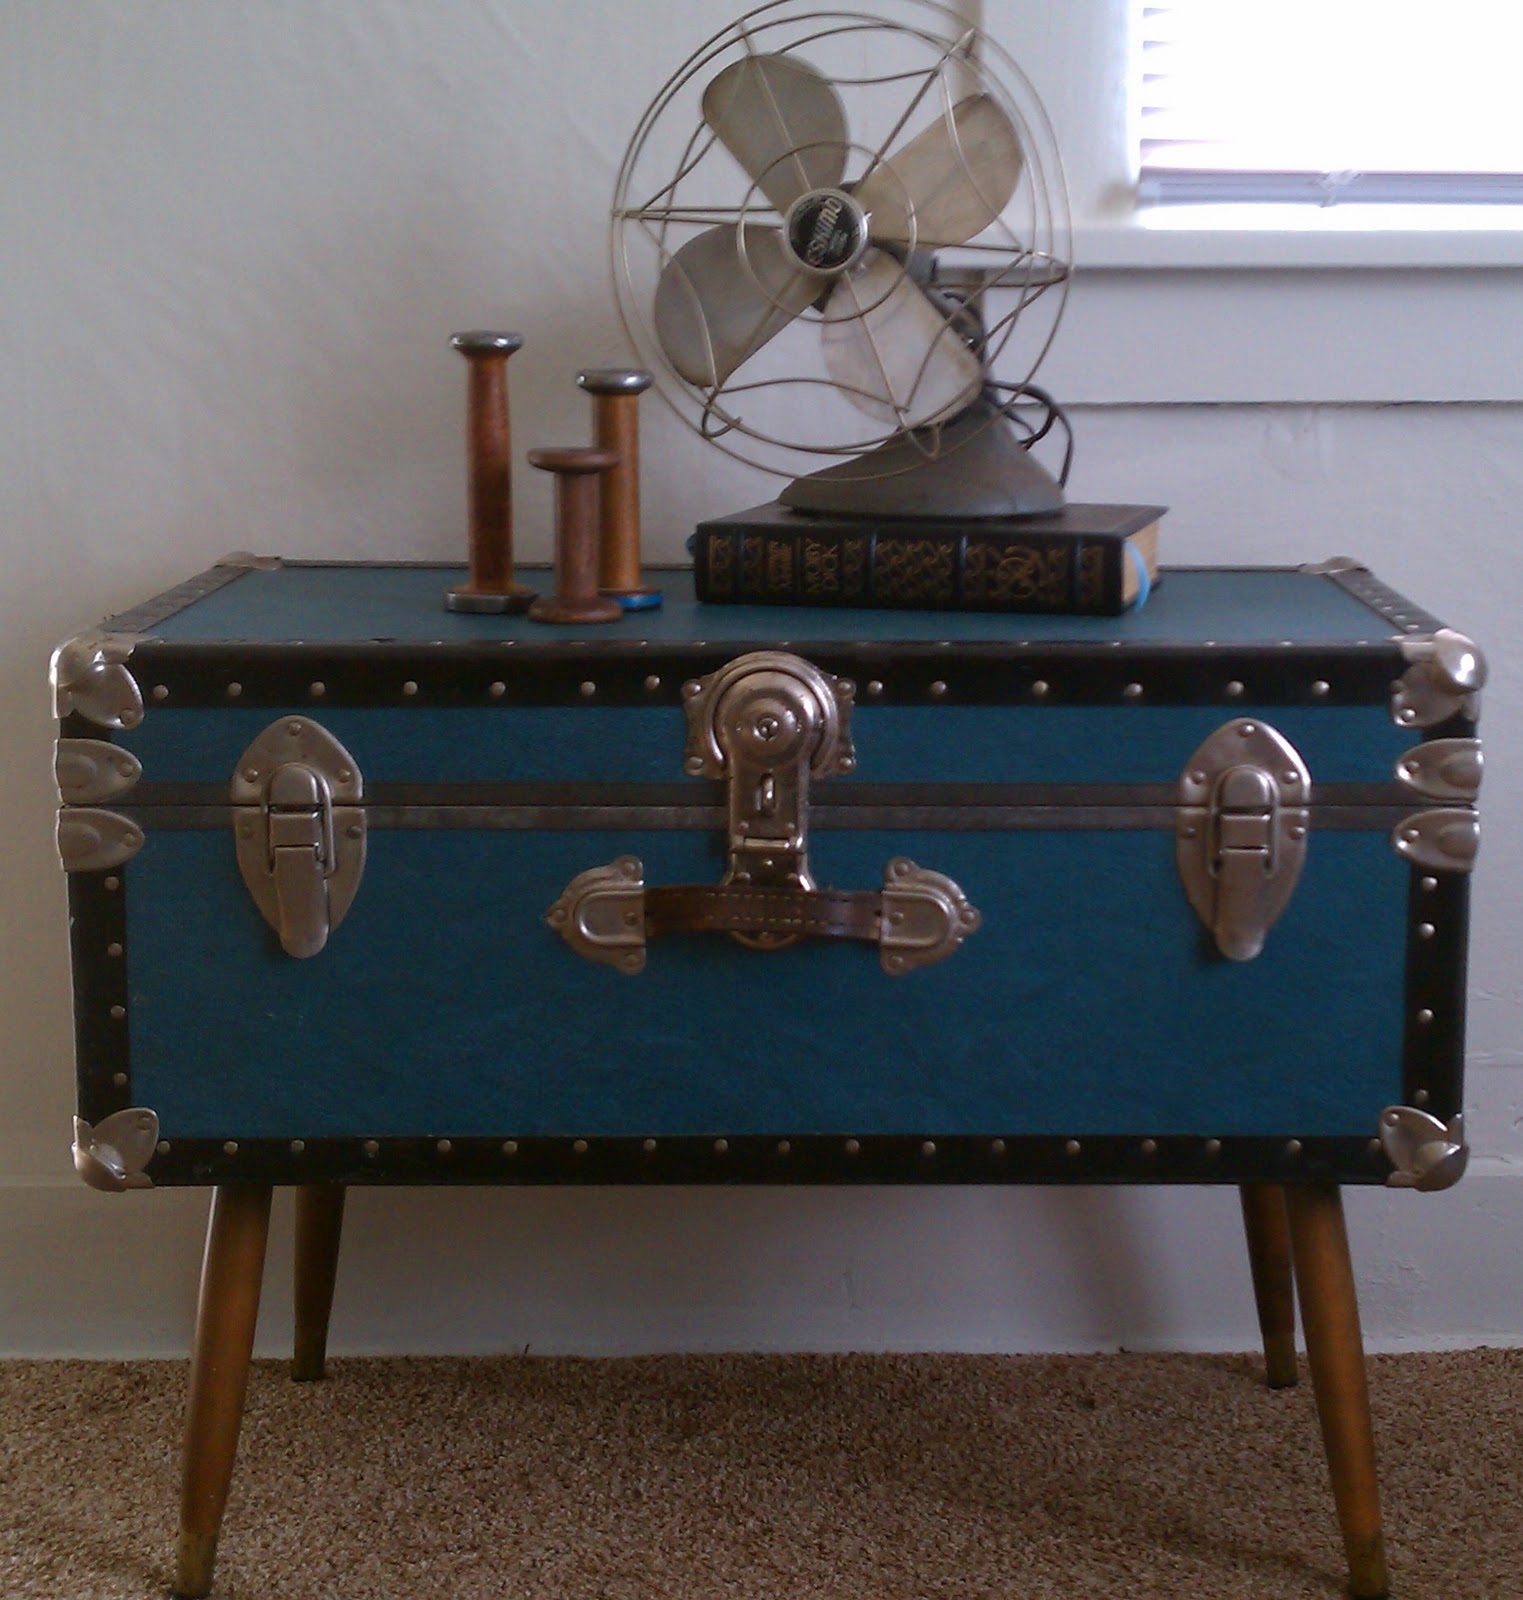 low stand fan on steamer trunk coffee table in bedroom with beige